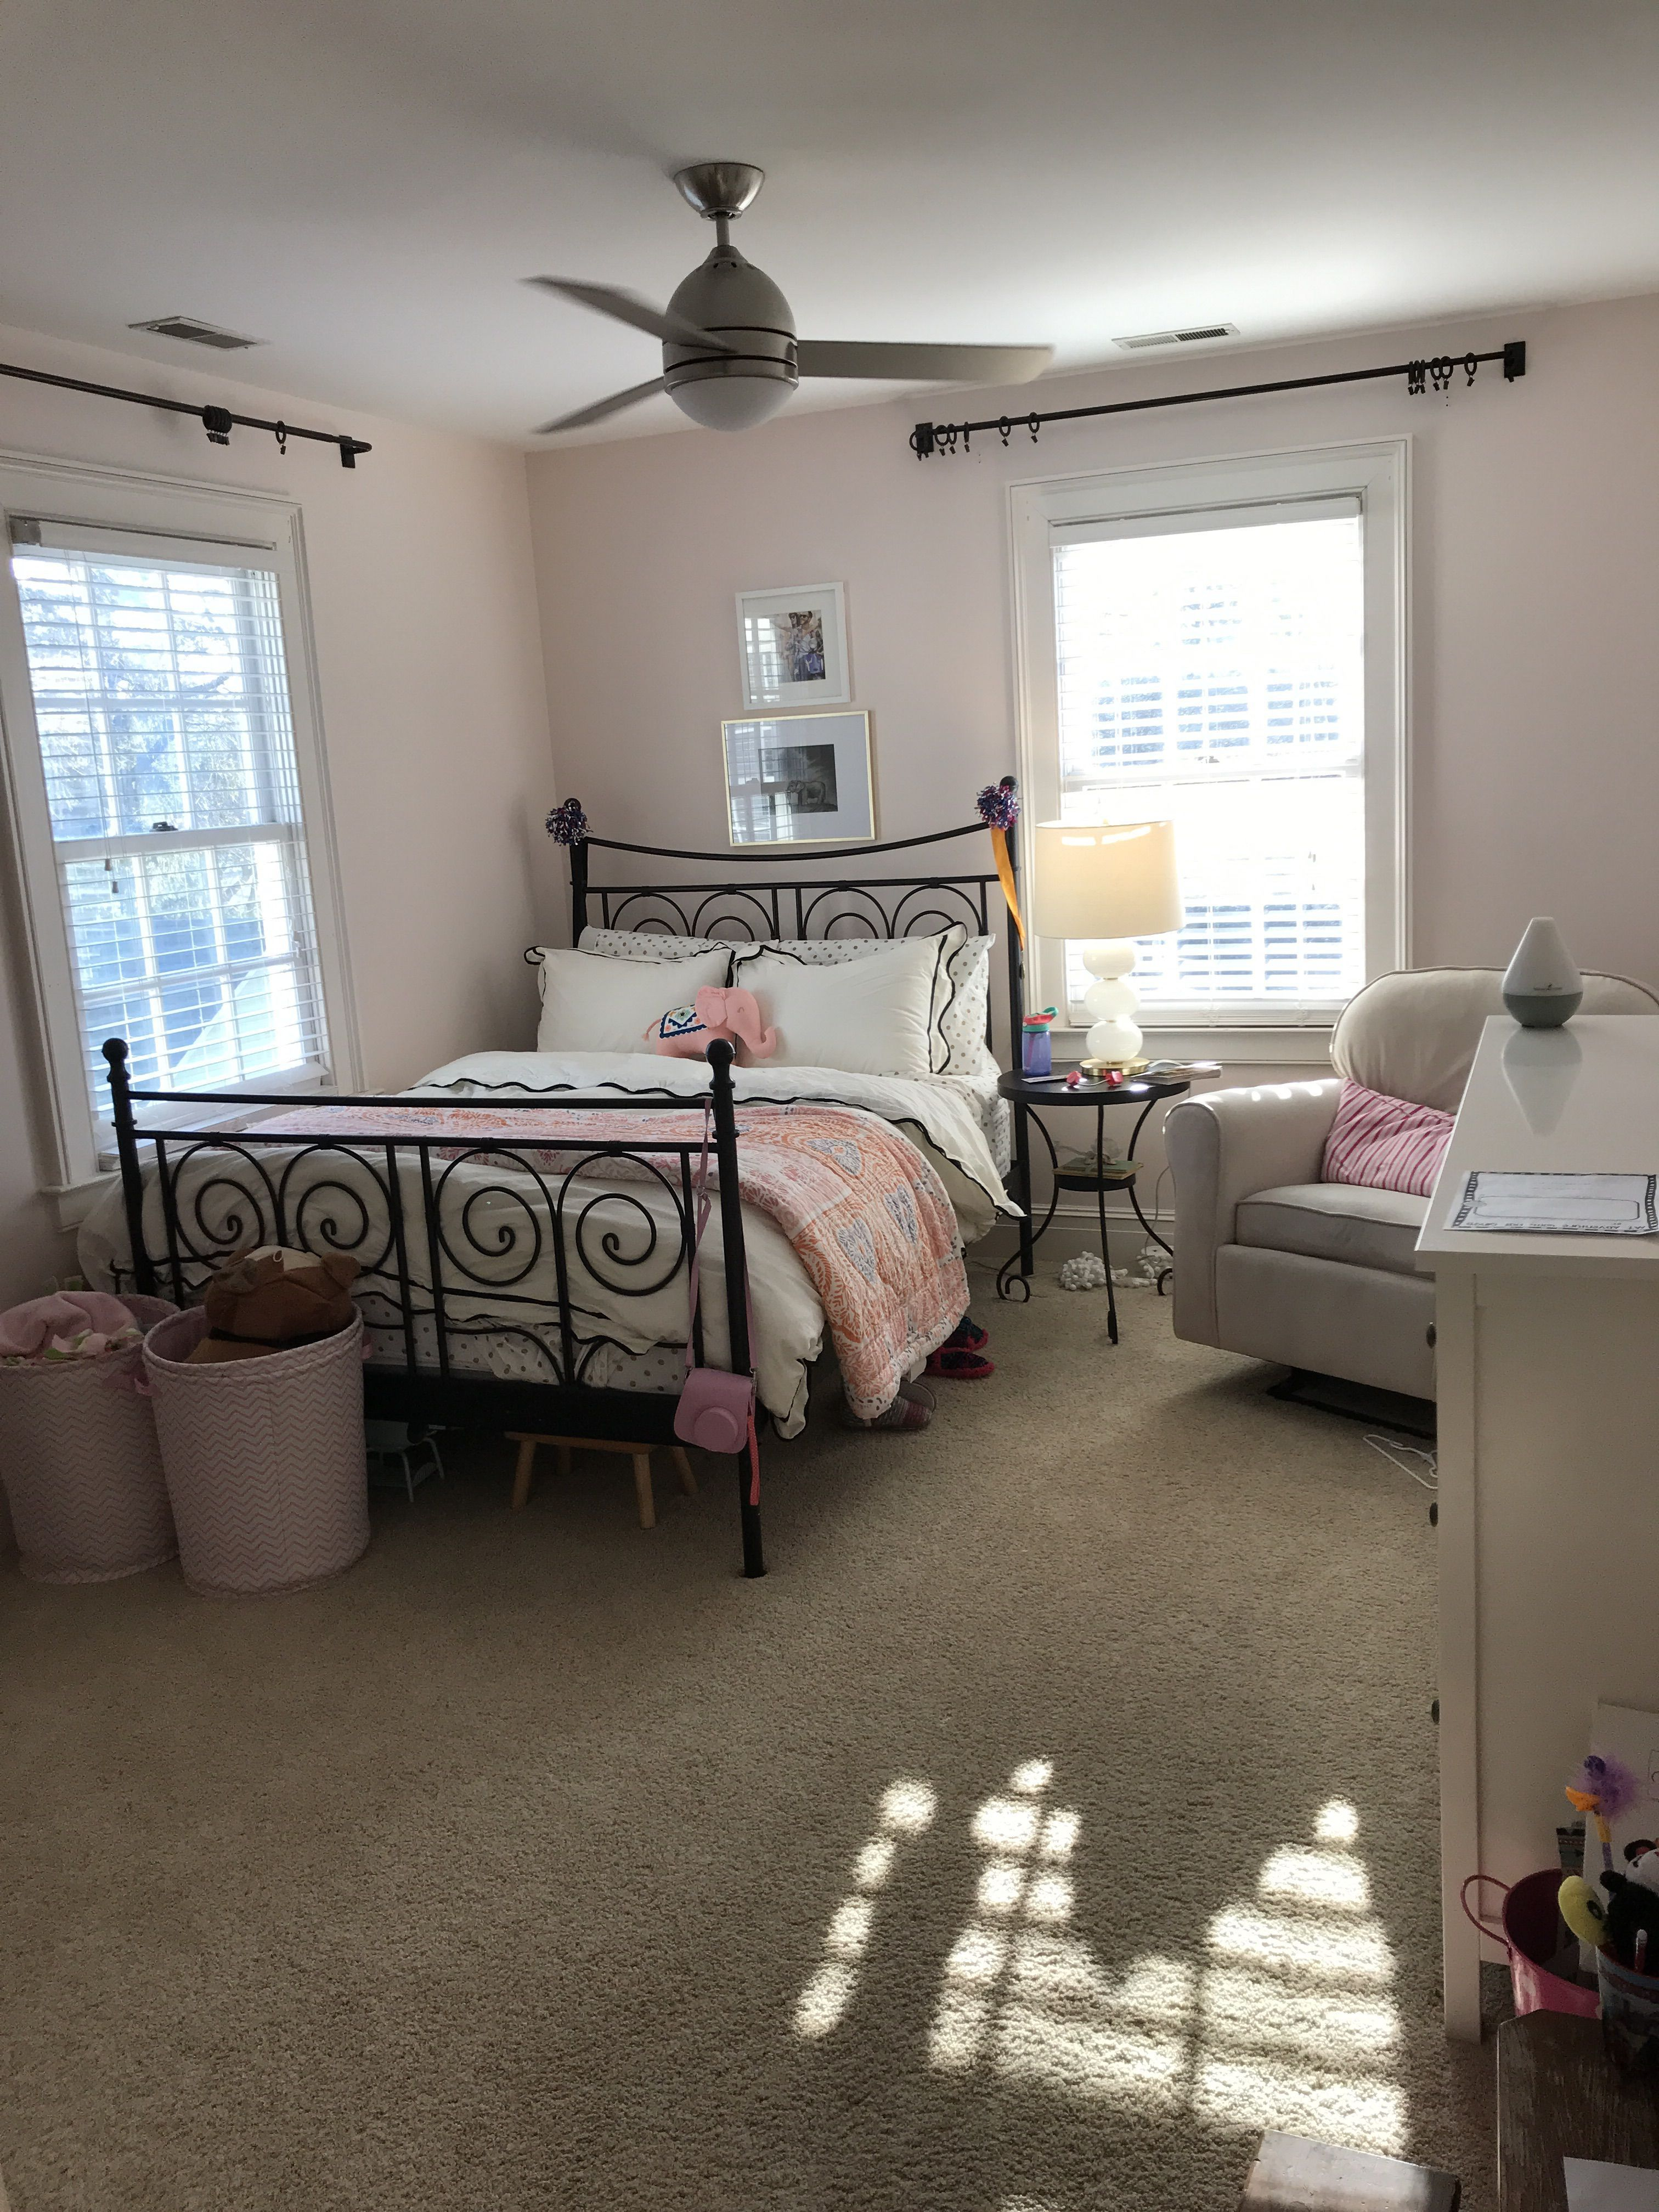 How To Place A Rug Under A Bed Area Rug Placement Bedroom Rug Placement Bed Against Wall In 2020 Rug Placement Bedroom Rug Placement Bed Against Wall